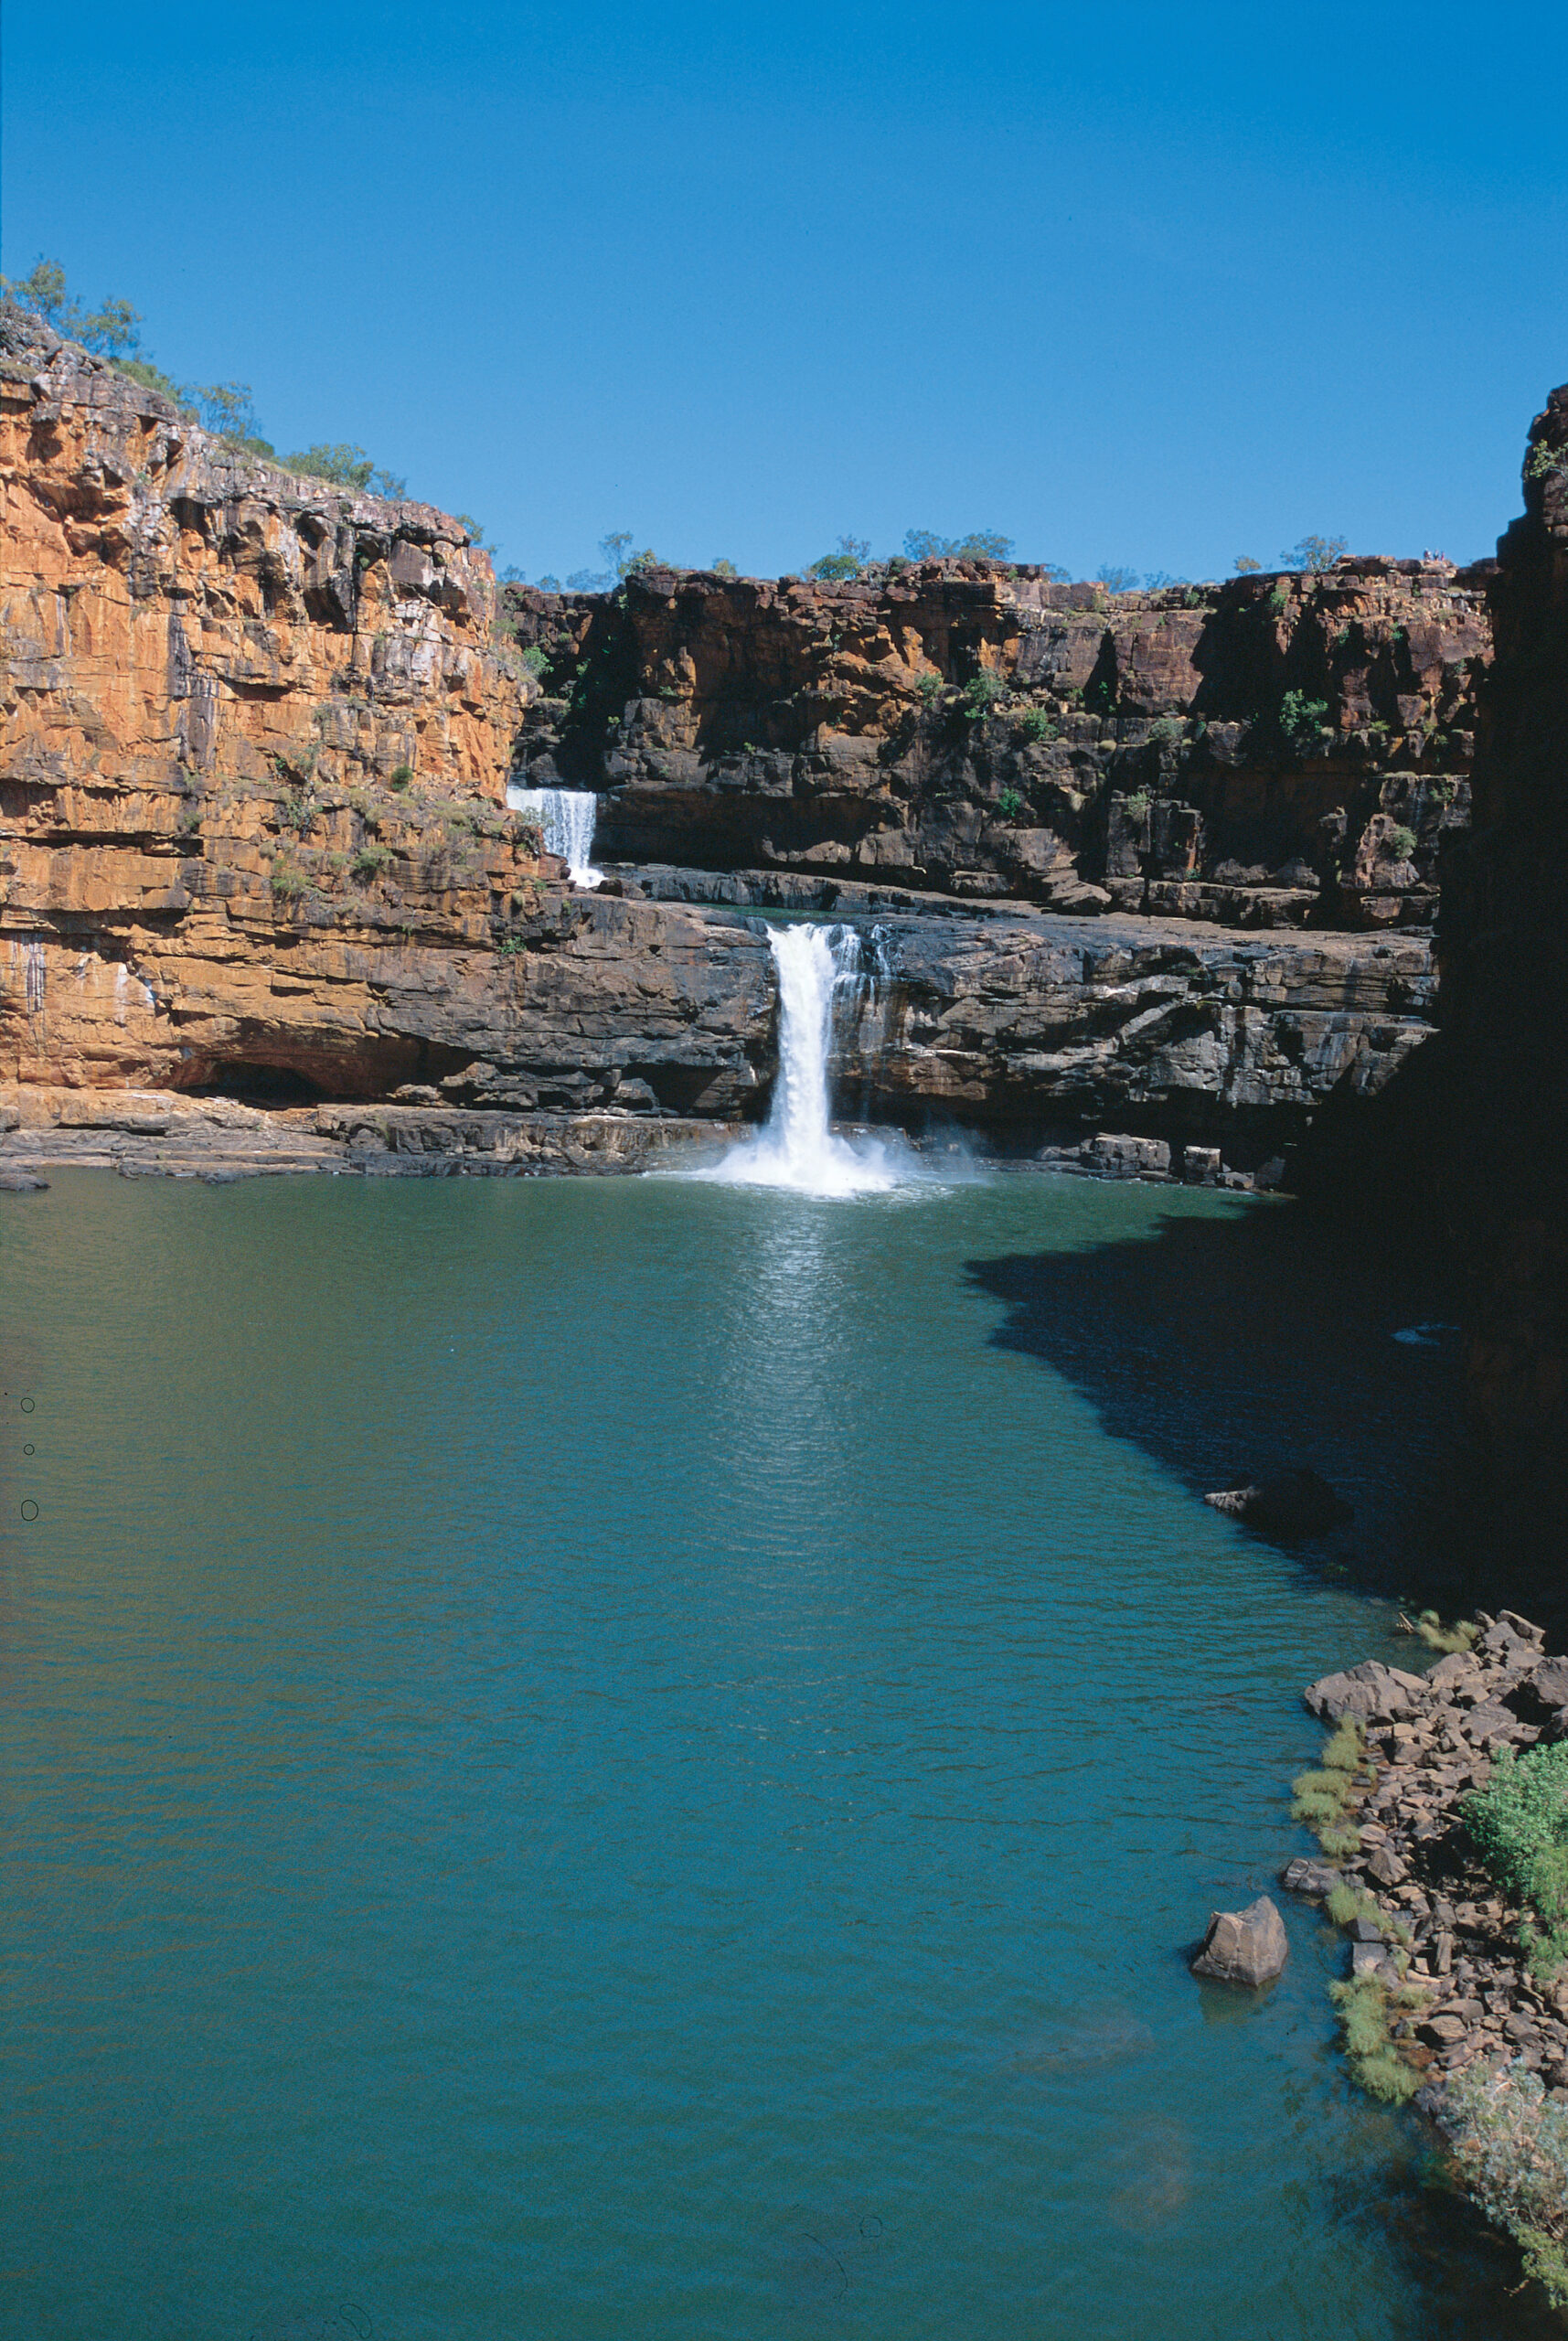 YOTSPACE superyacht voyages - Kimberley voyages - Mitchell River National Park